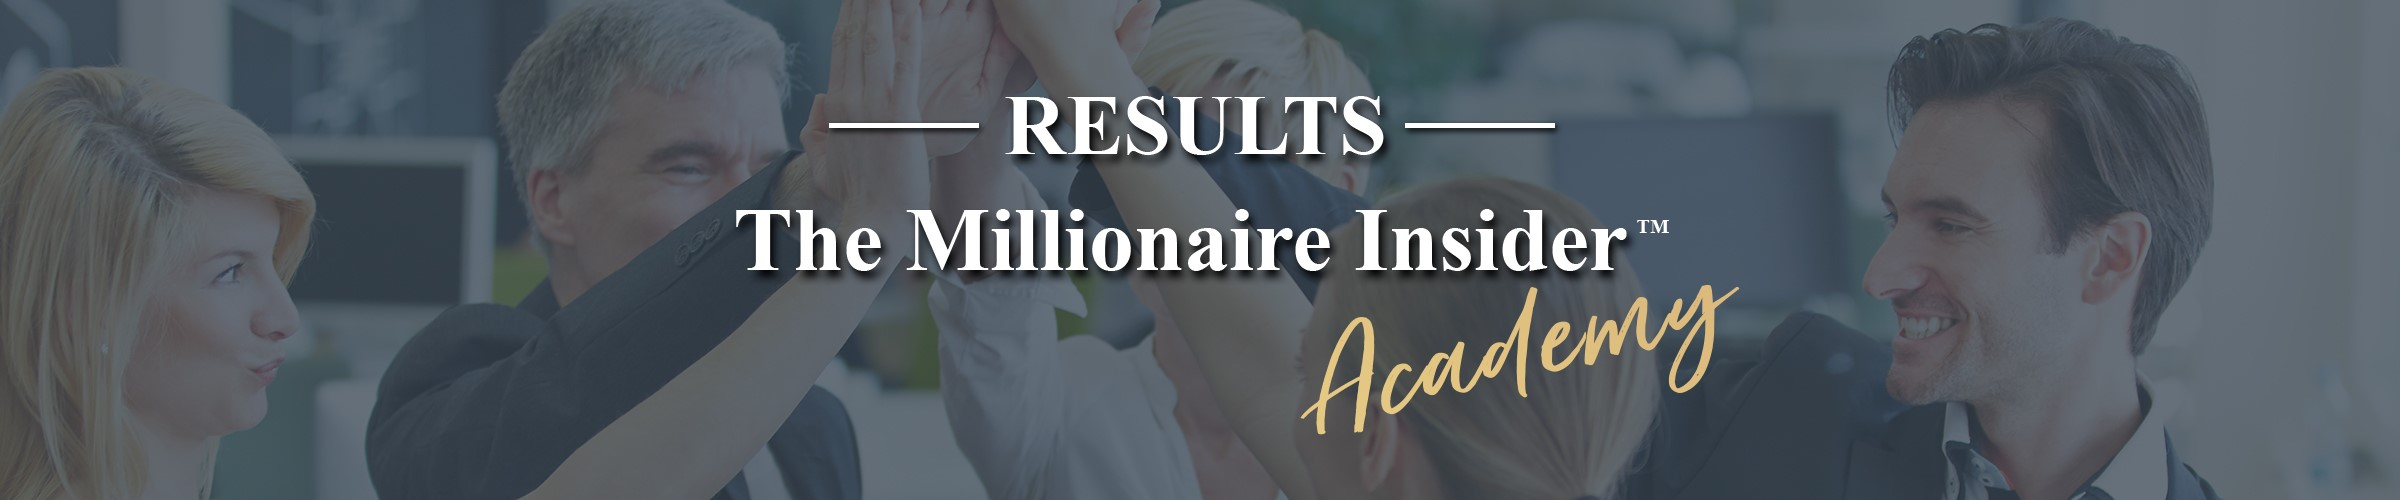 the millionaire insider academy results